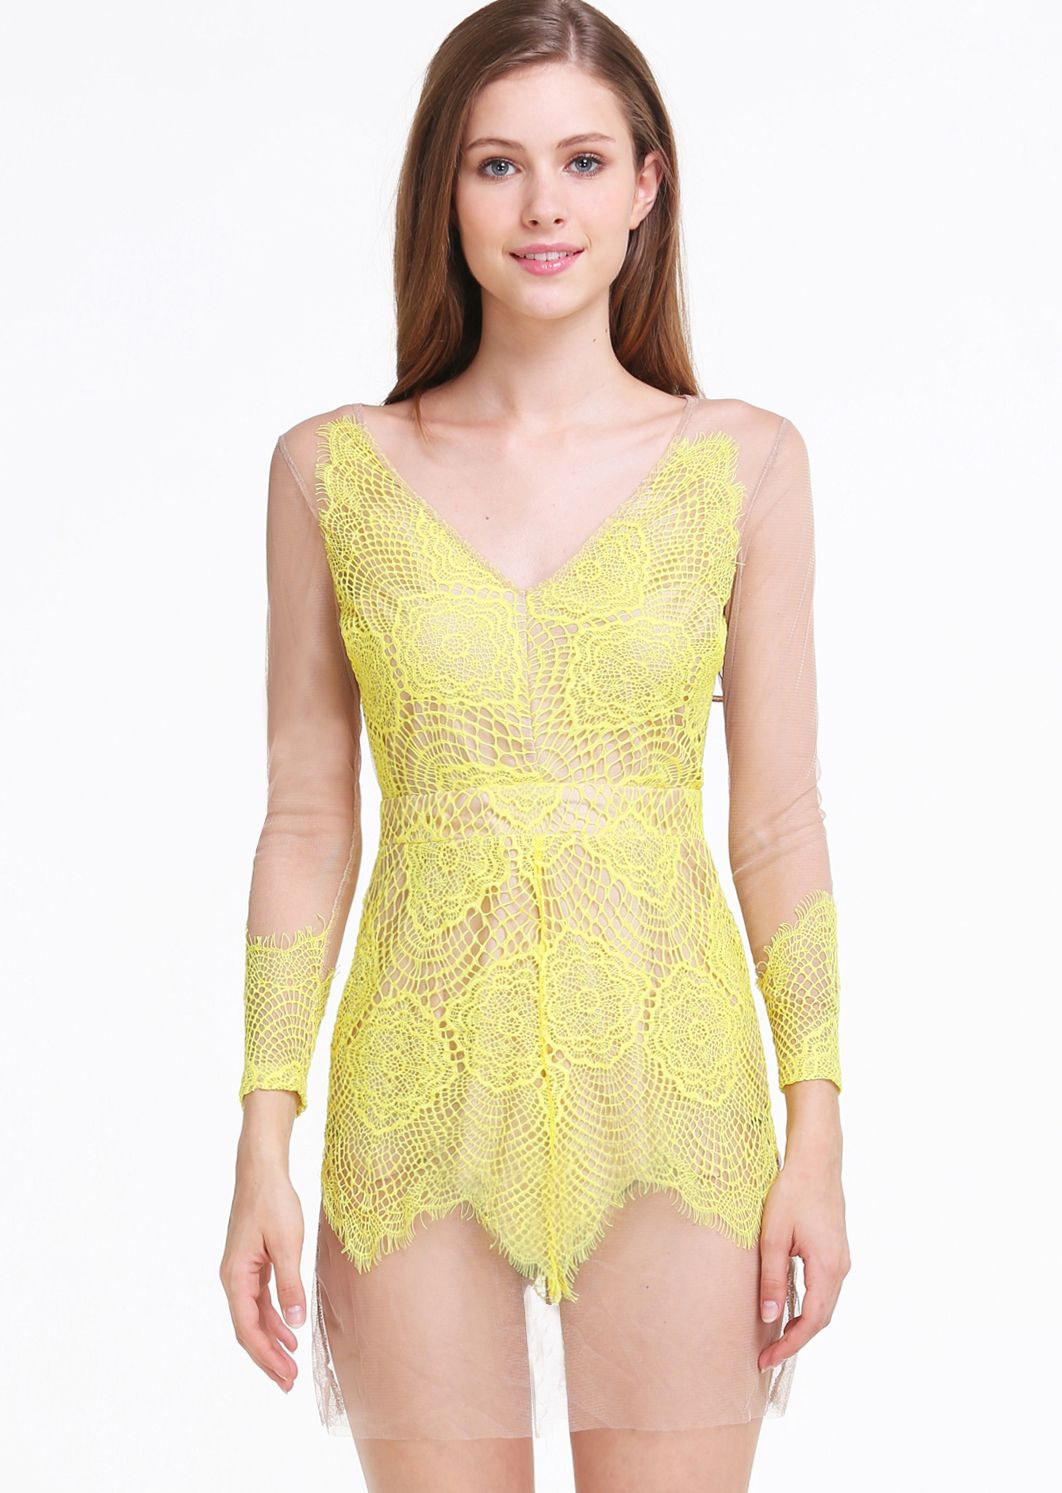 Yellow dress long sleeve  Yellow V Neck Long Sleeve Backless Lace Dress  Absolutely Love It